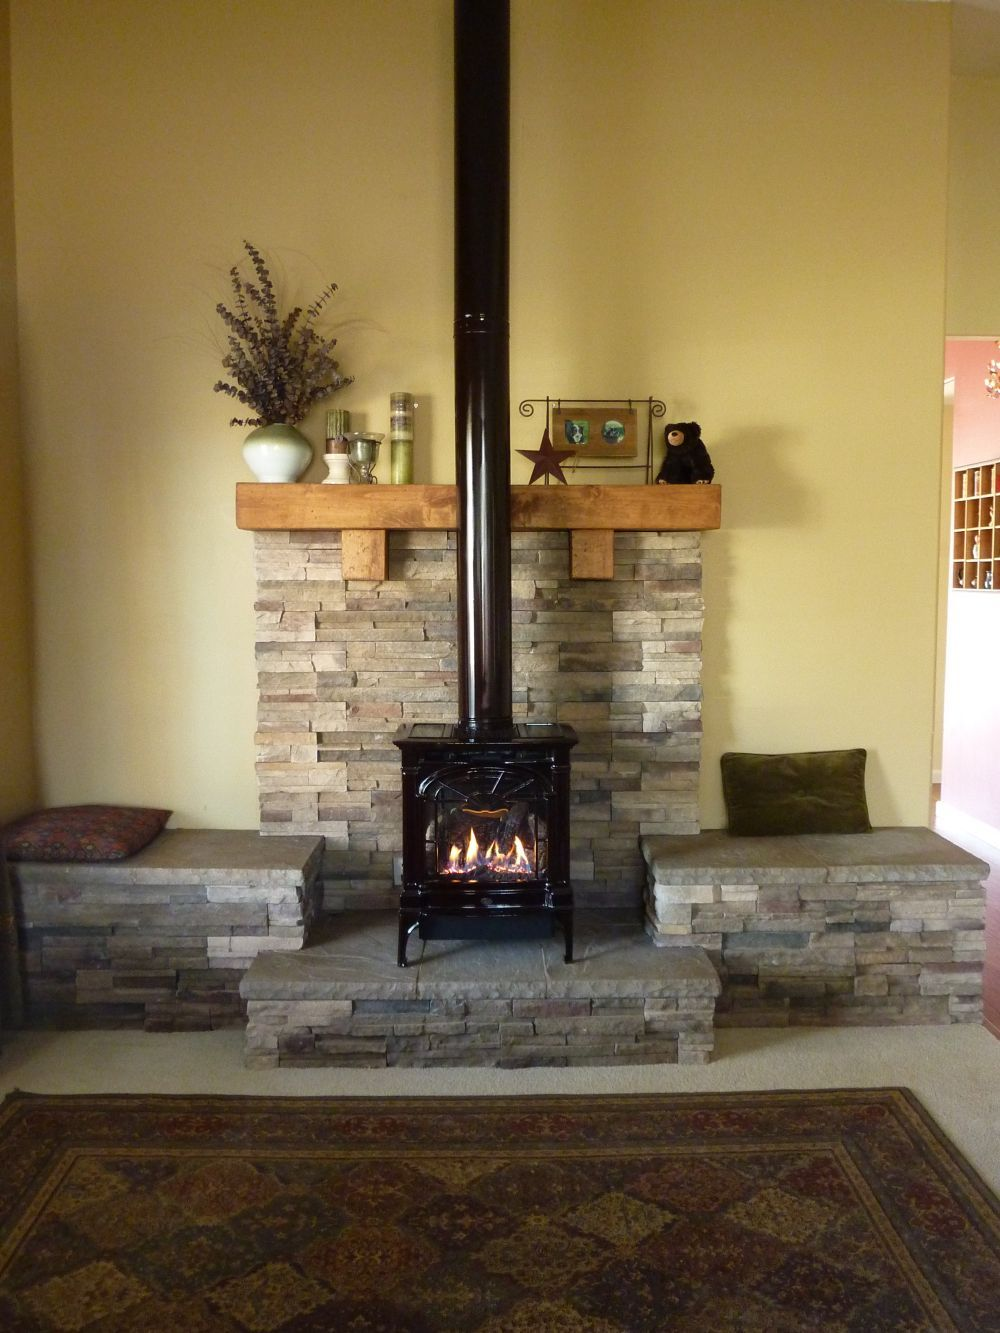 Propane Fireplace Installation Propane Fireplace We Had This Hearth Built To Give More Presence